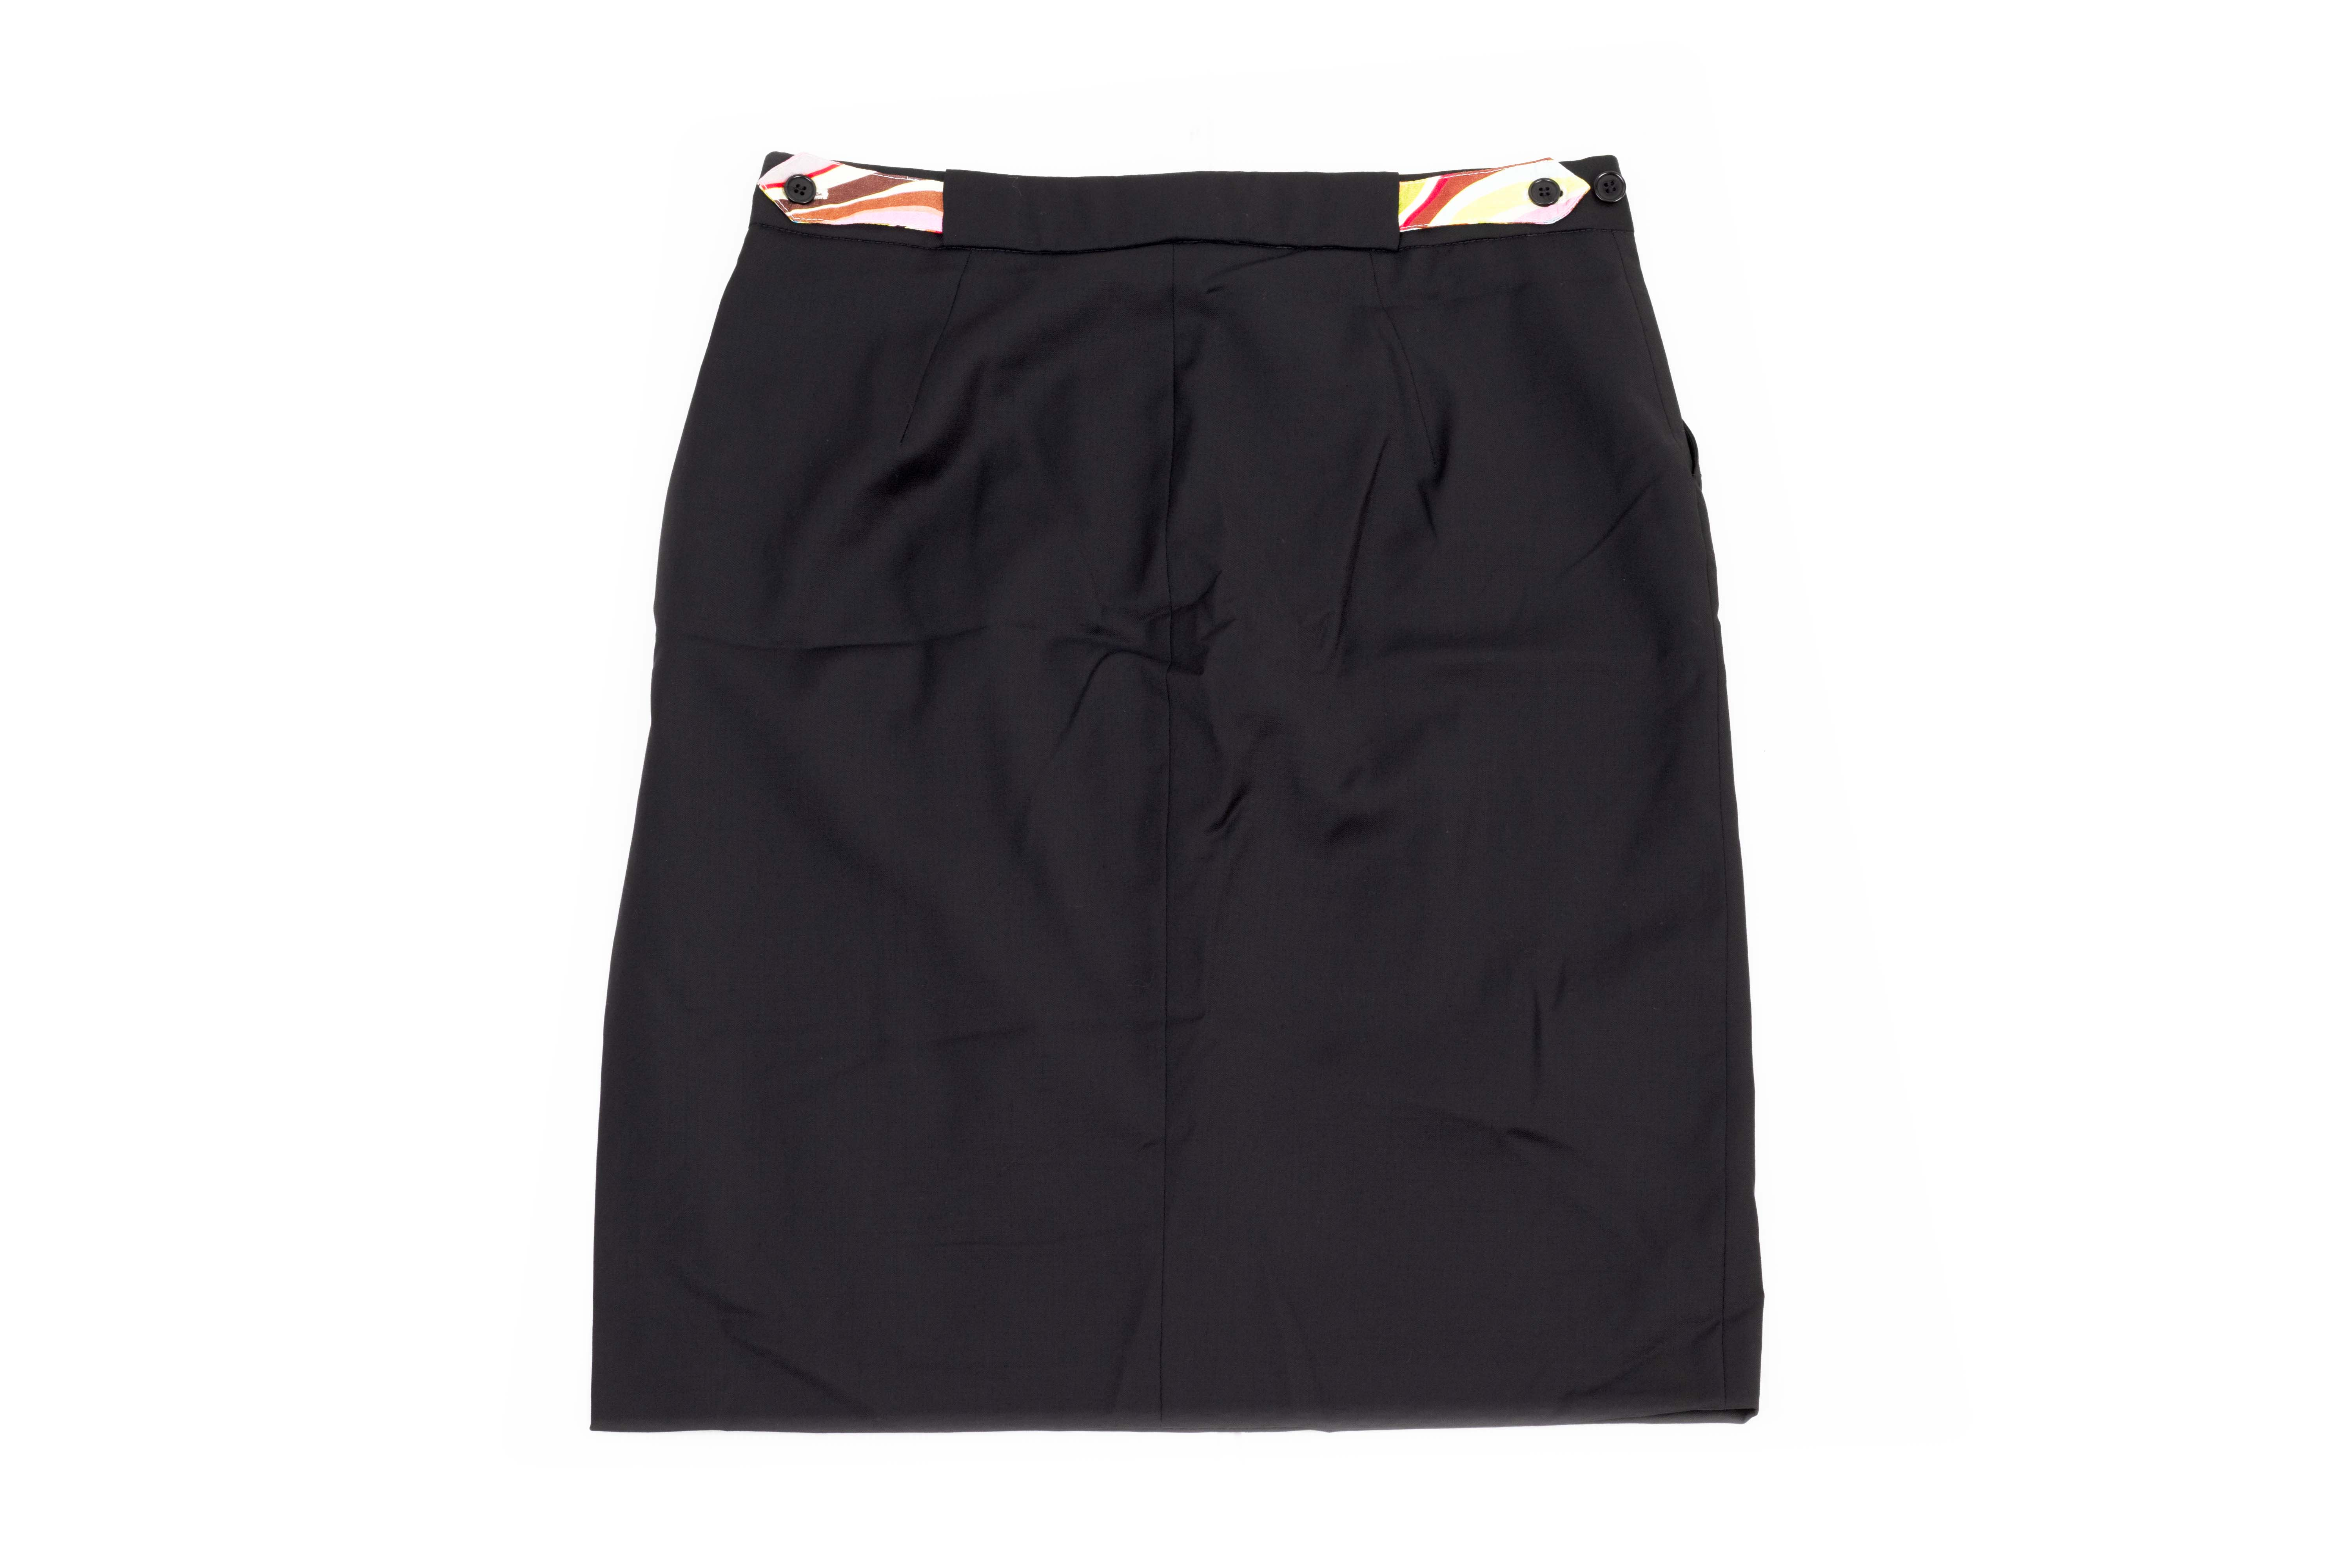 A PAUL SMITH BLACK SKIRT - Image 3 of 3